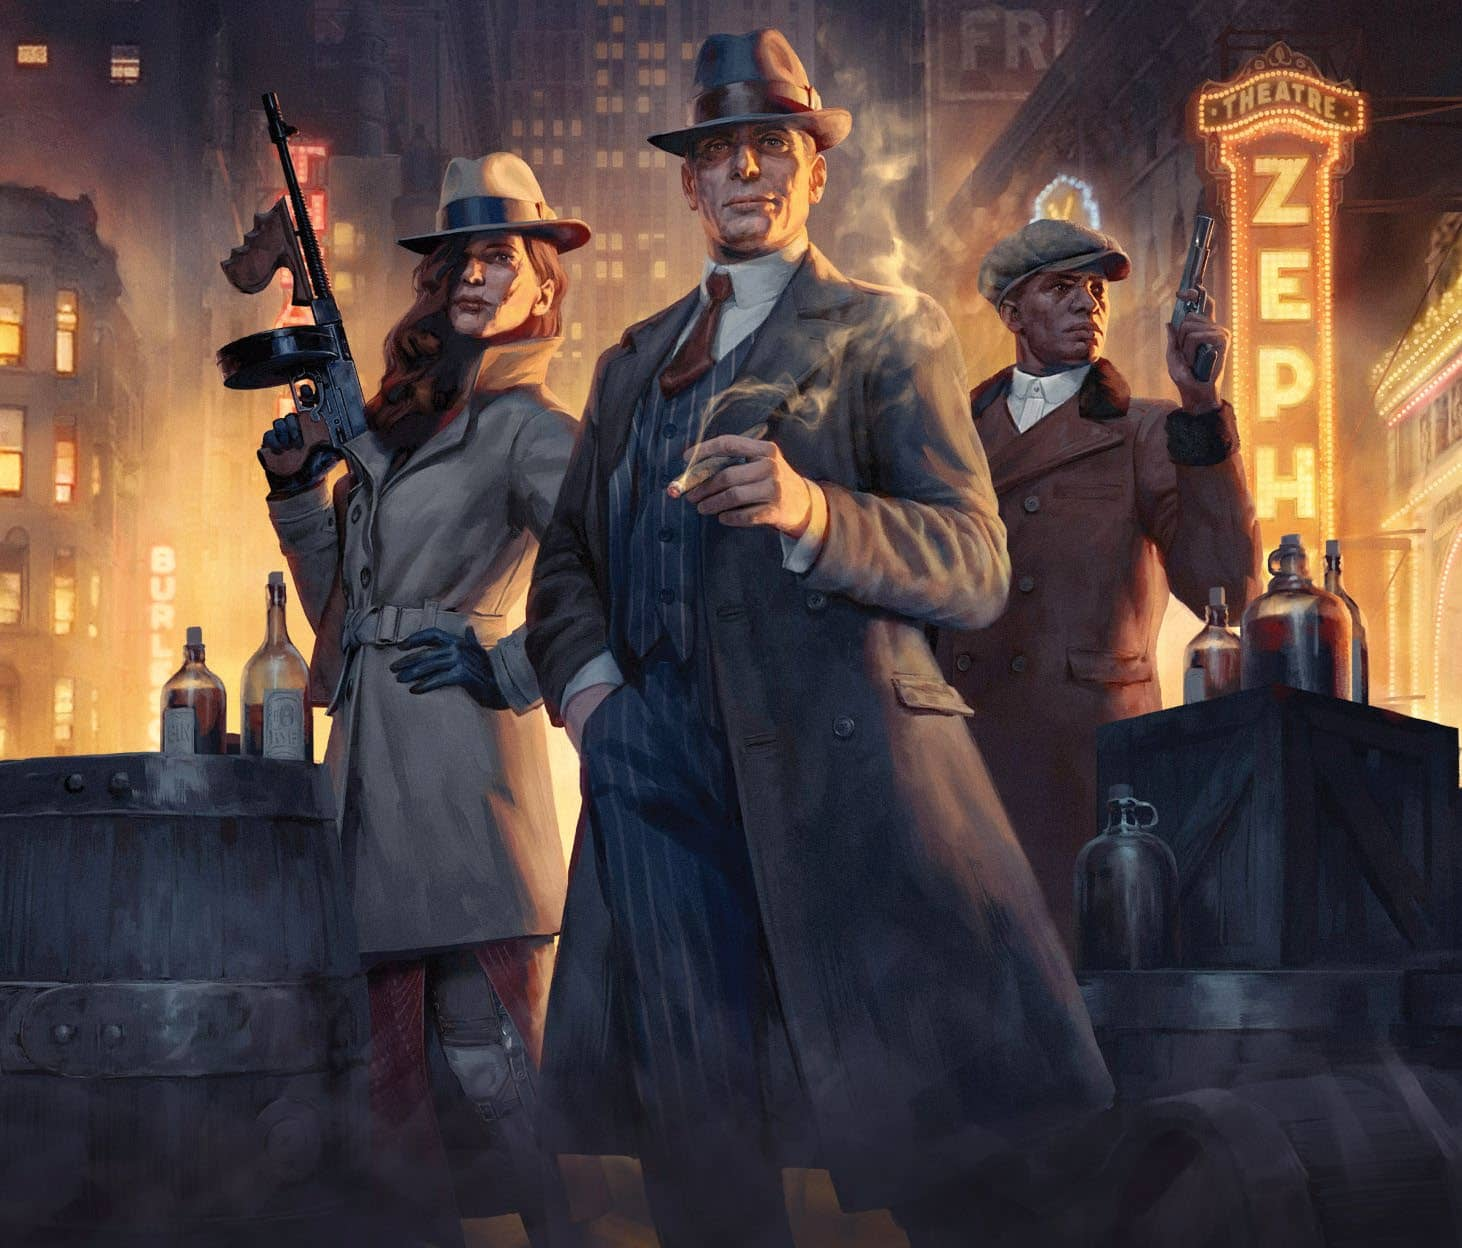 Alcohol Is Everything In Romero Games' Prohibition-Era Game